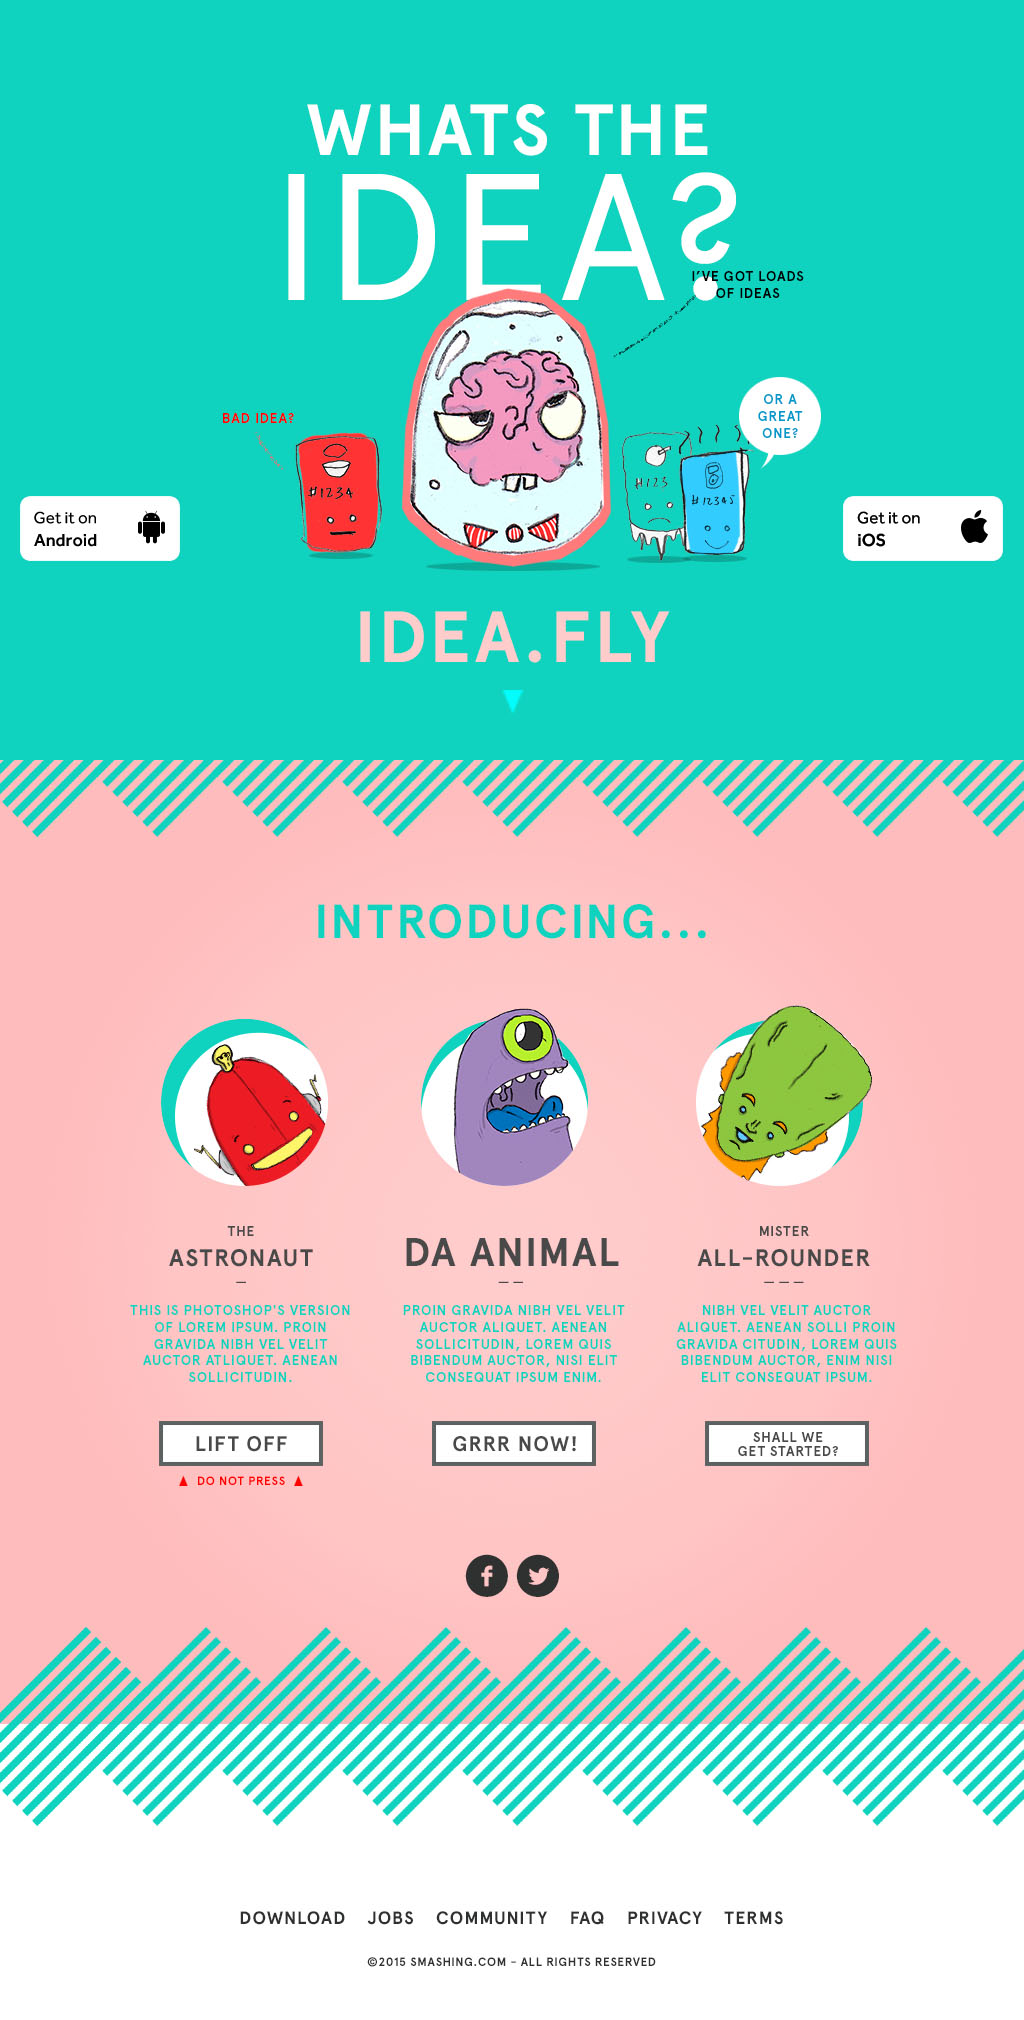 ideafly_characters_01 1 - Graphic Design Project Ideas